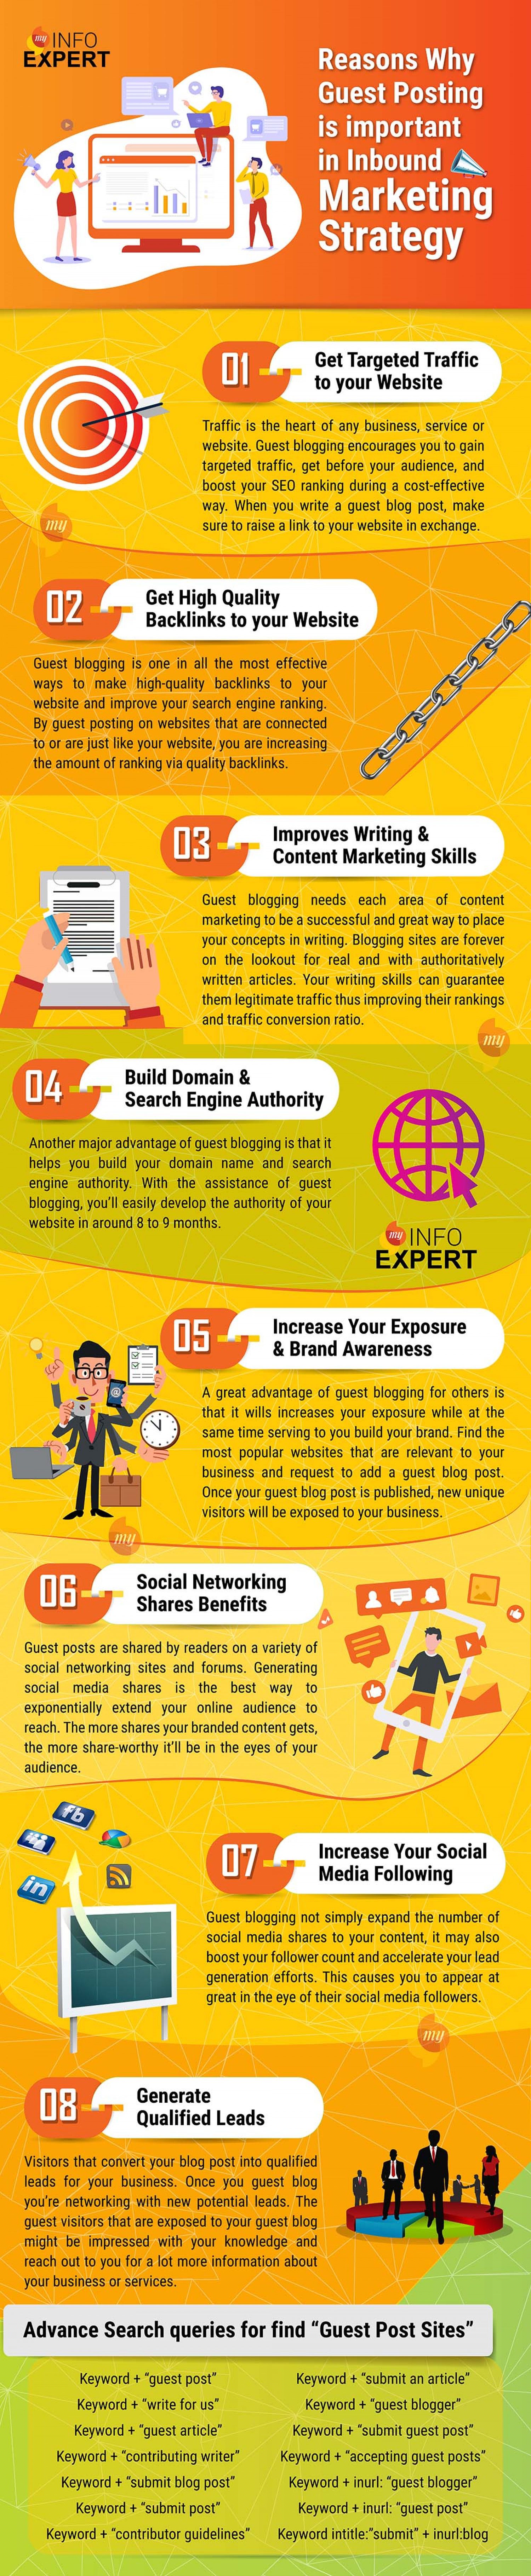 Reasons Why Guest Posting is important in Inbound Marketing Strategy